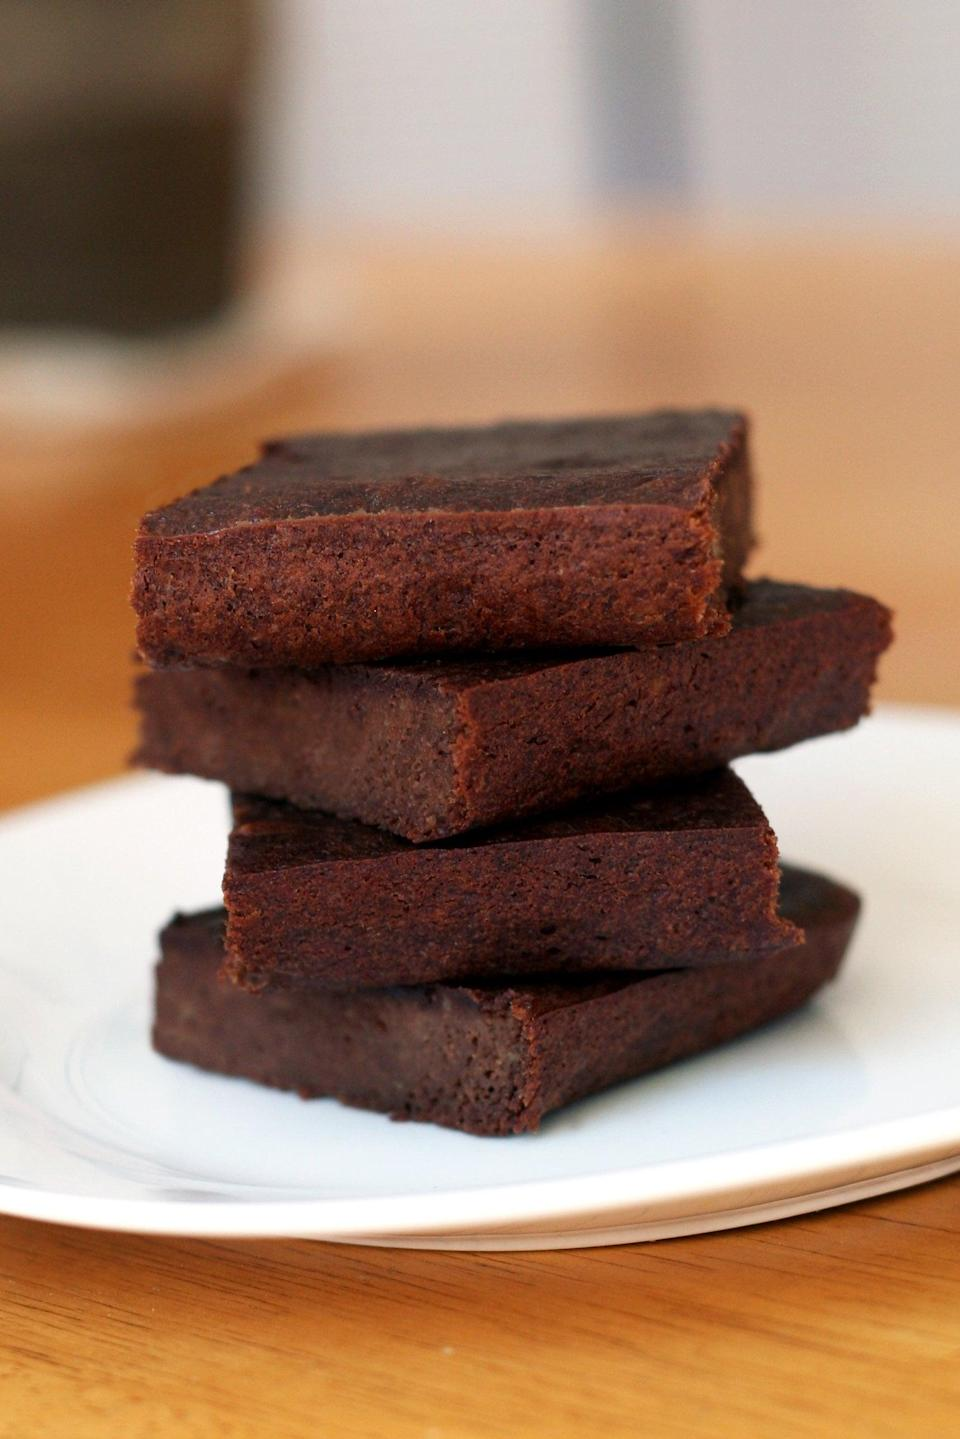 """<p>You probably already have everything you need to make these brownies, except maybe the patience to wait for them to cook! </p> <p><strong>Get the recipe:</strong> <a href=""""https://www.popsugar.com/fitness/Healthy-Brownie-Recipe-43329566"""" class=""""link rapid-noclick-resp"""" rel=""""nofollow noopener"""" target=""""_blank"""" data-ylk=""""slk:three-ingredient brownies"""">three-ingredient brownies</a></p>"""